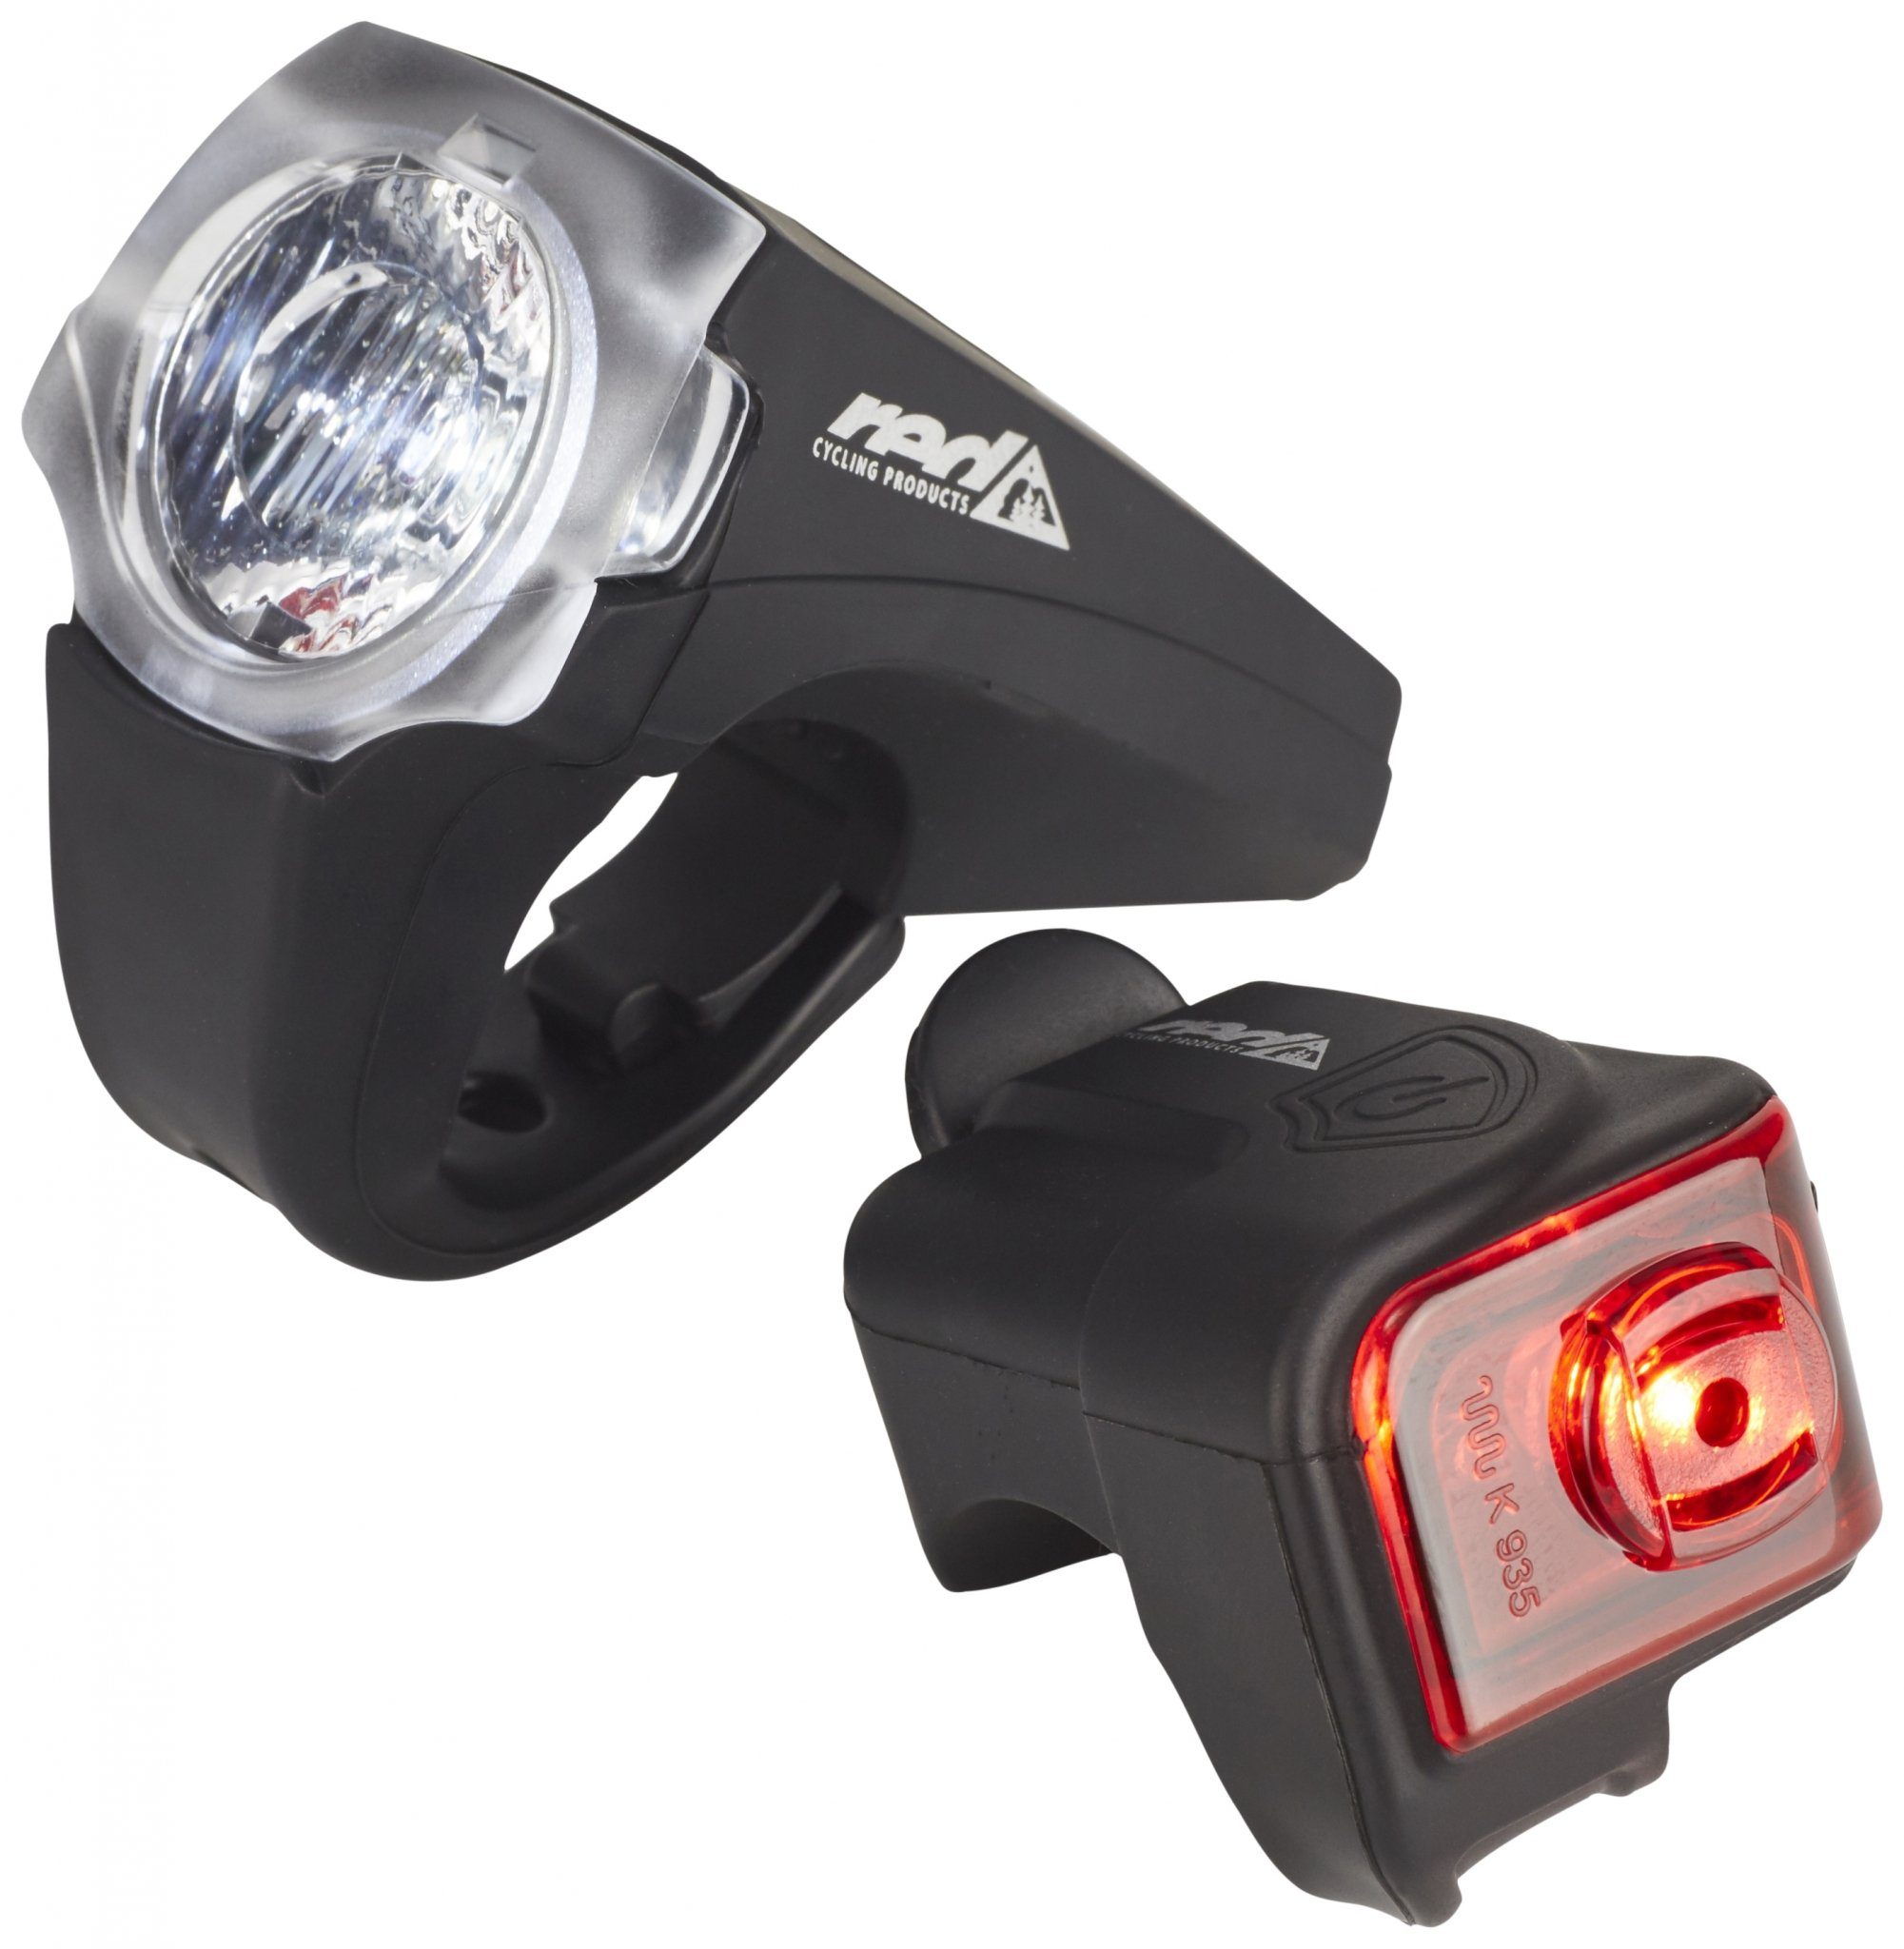 Red Cycling Products Fahrradbeleuchtung »PRO 20 Lux Urban LED Beleuchtungsset«